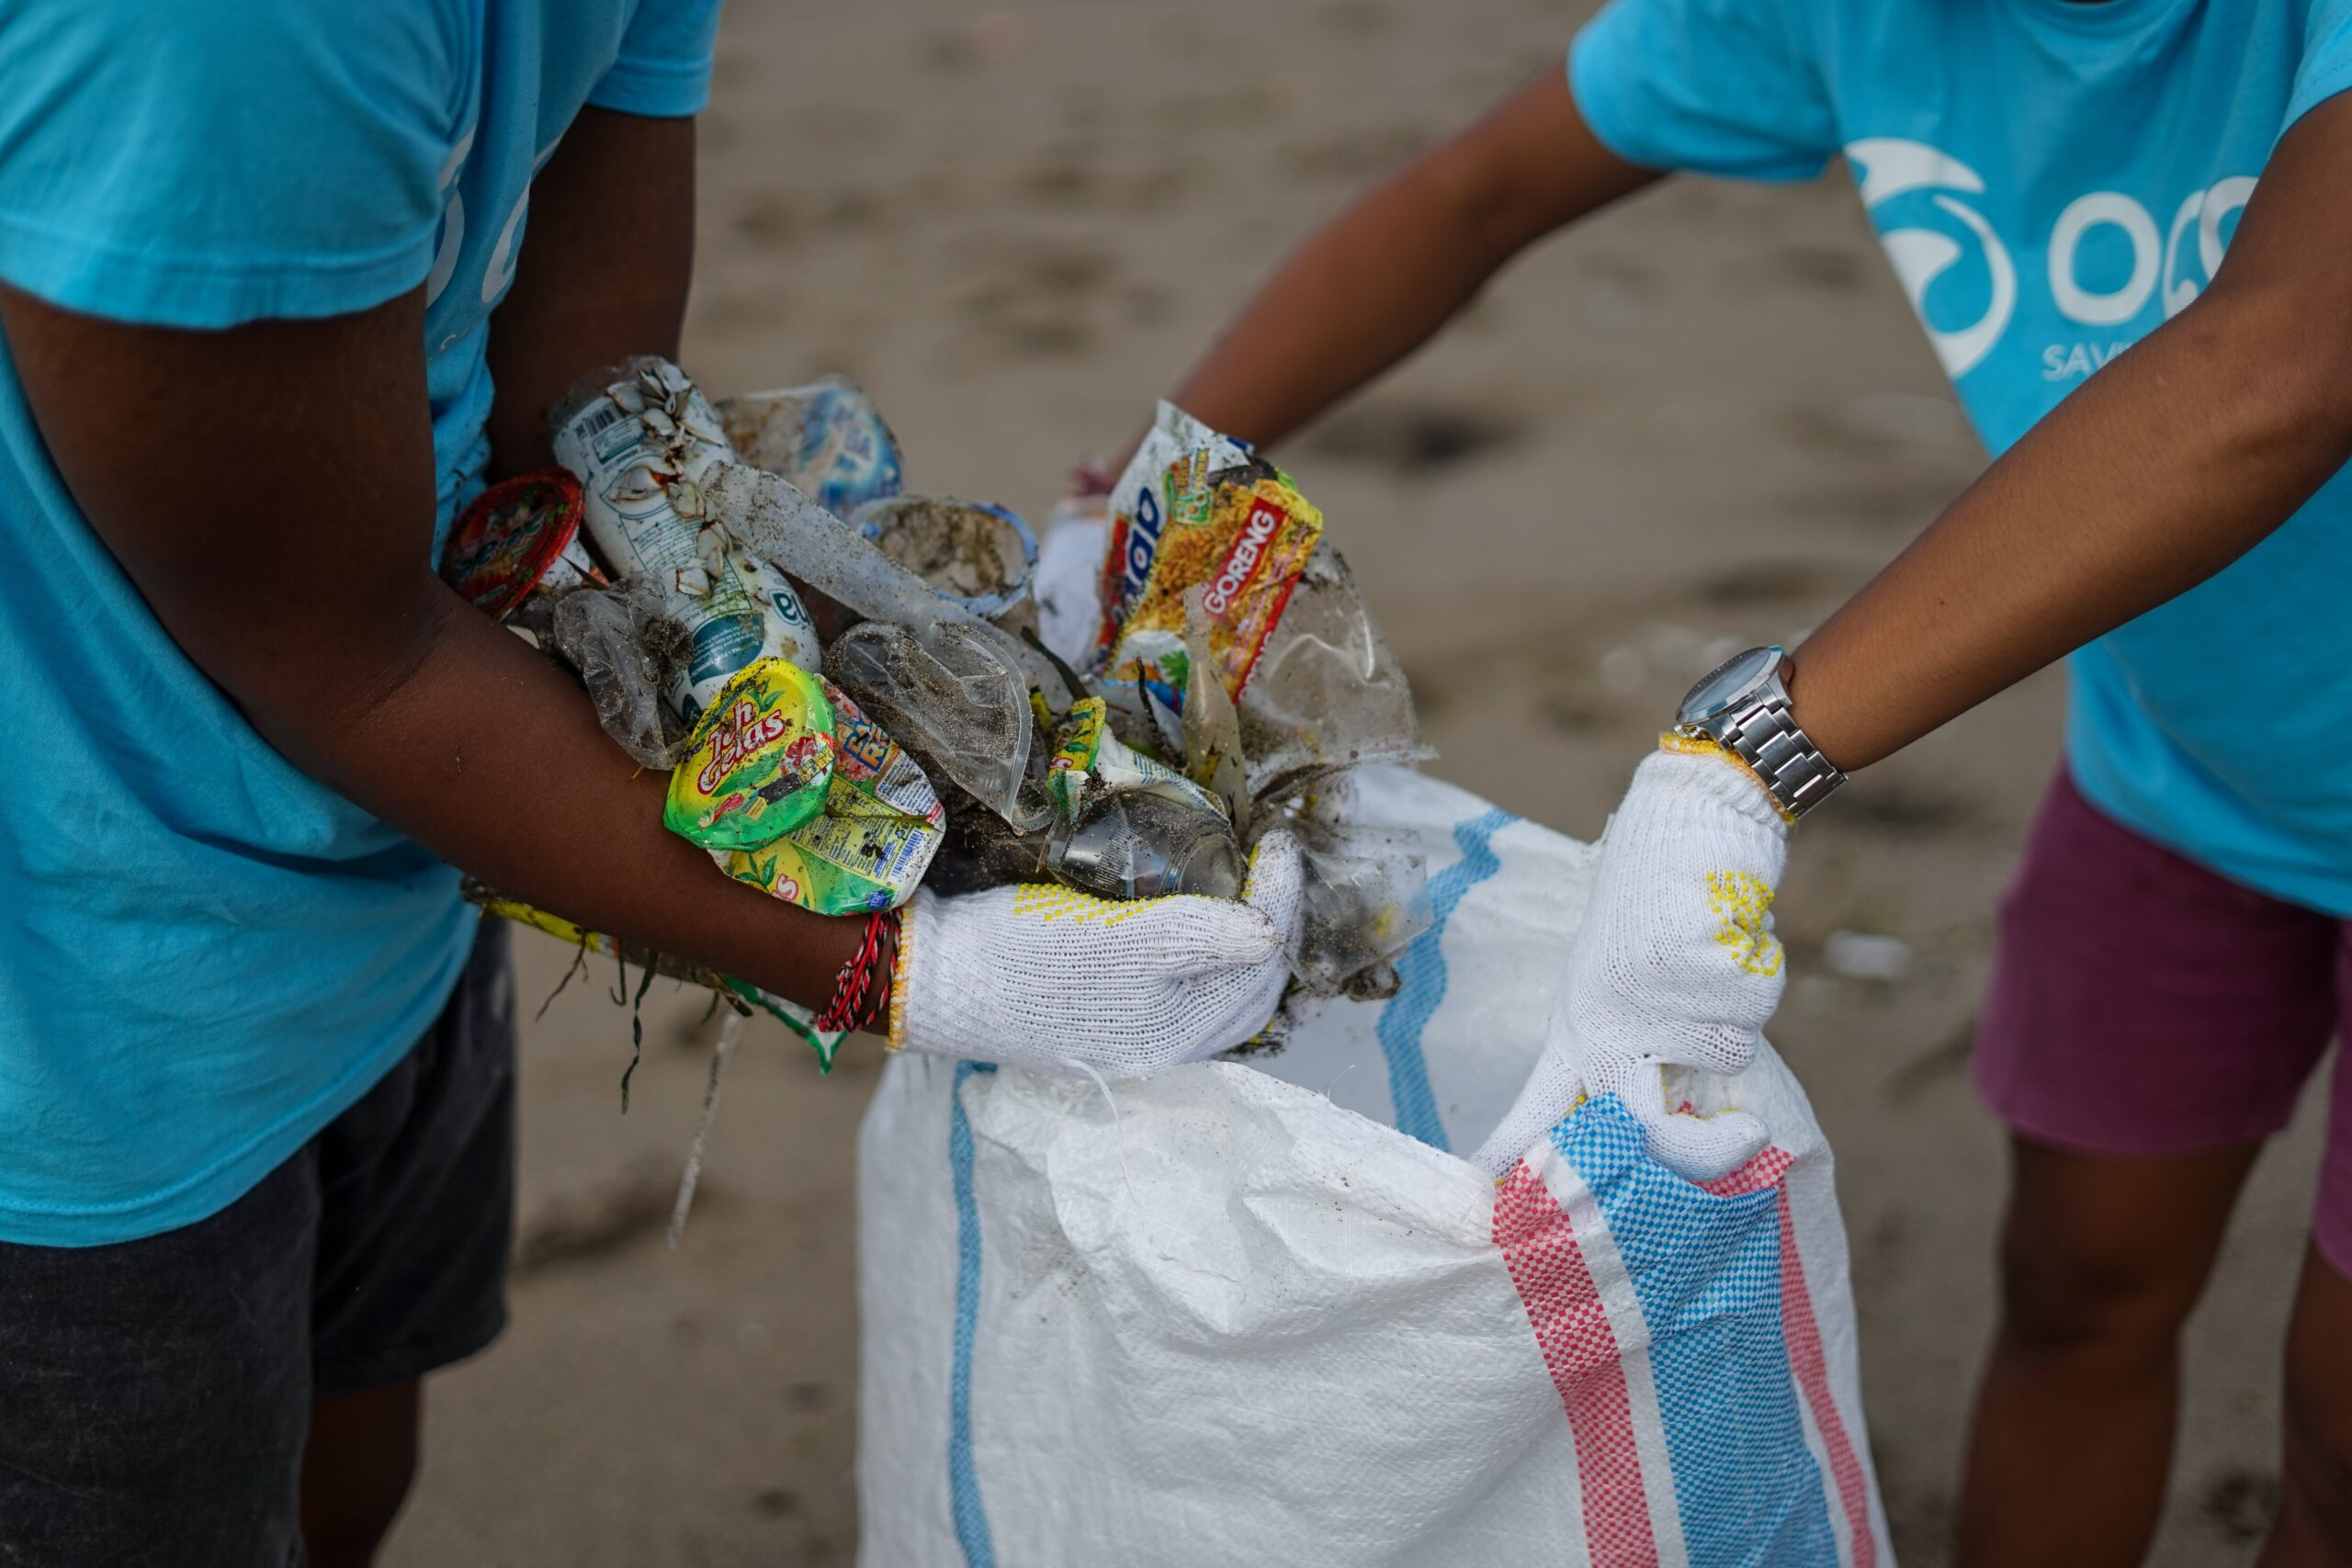 Two people clearing up plastic waste from a beach